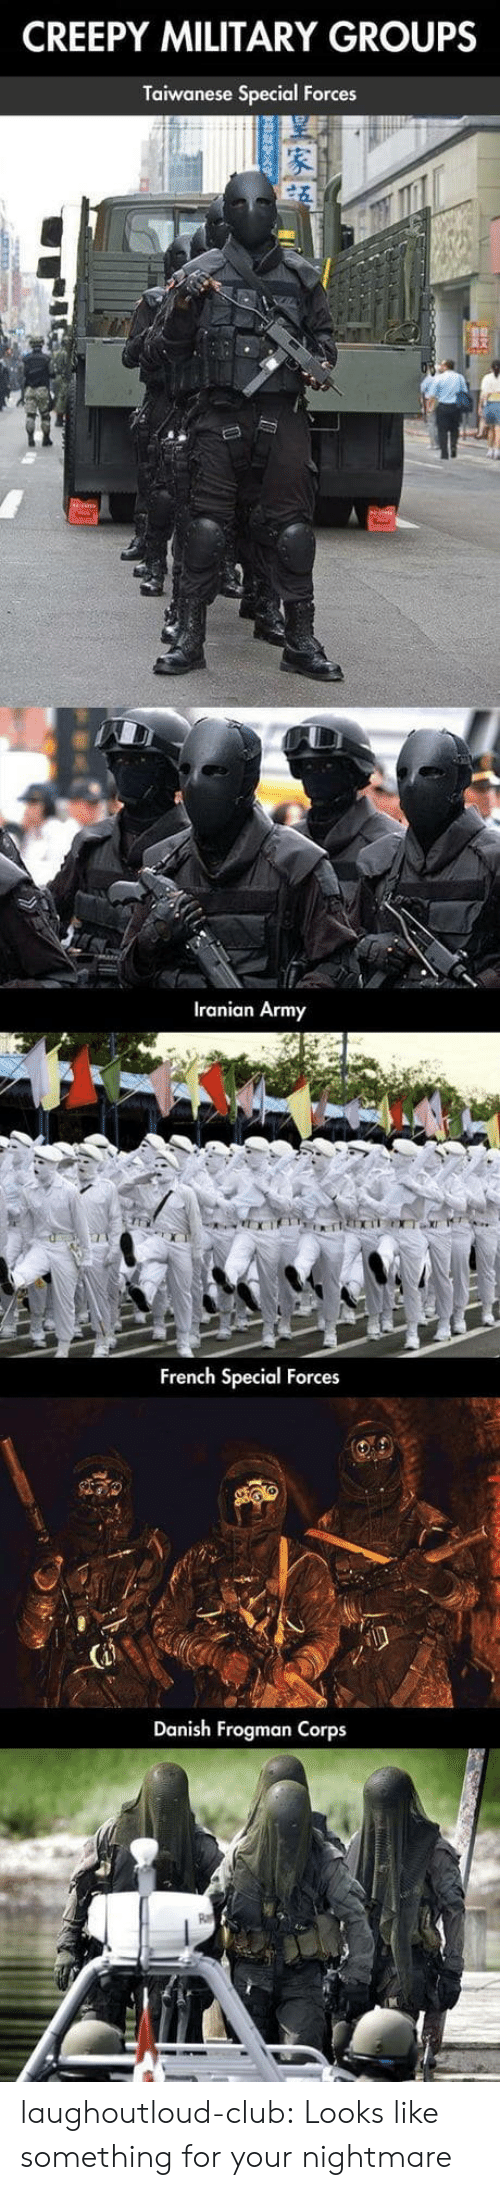 special forces: CREEPY MILITARY GROUPS  Taiwanese Special Forces  Iranian Army  French Special Forces  Danish Frogman Corps laughoutloud-club:  Looks like something for your nightmare